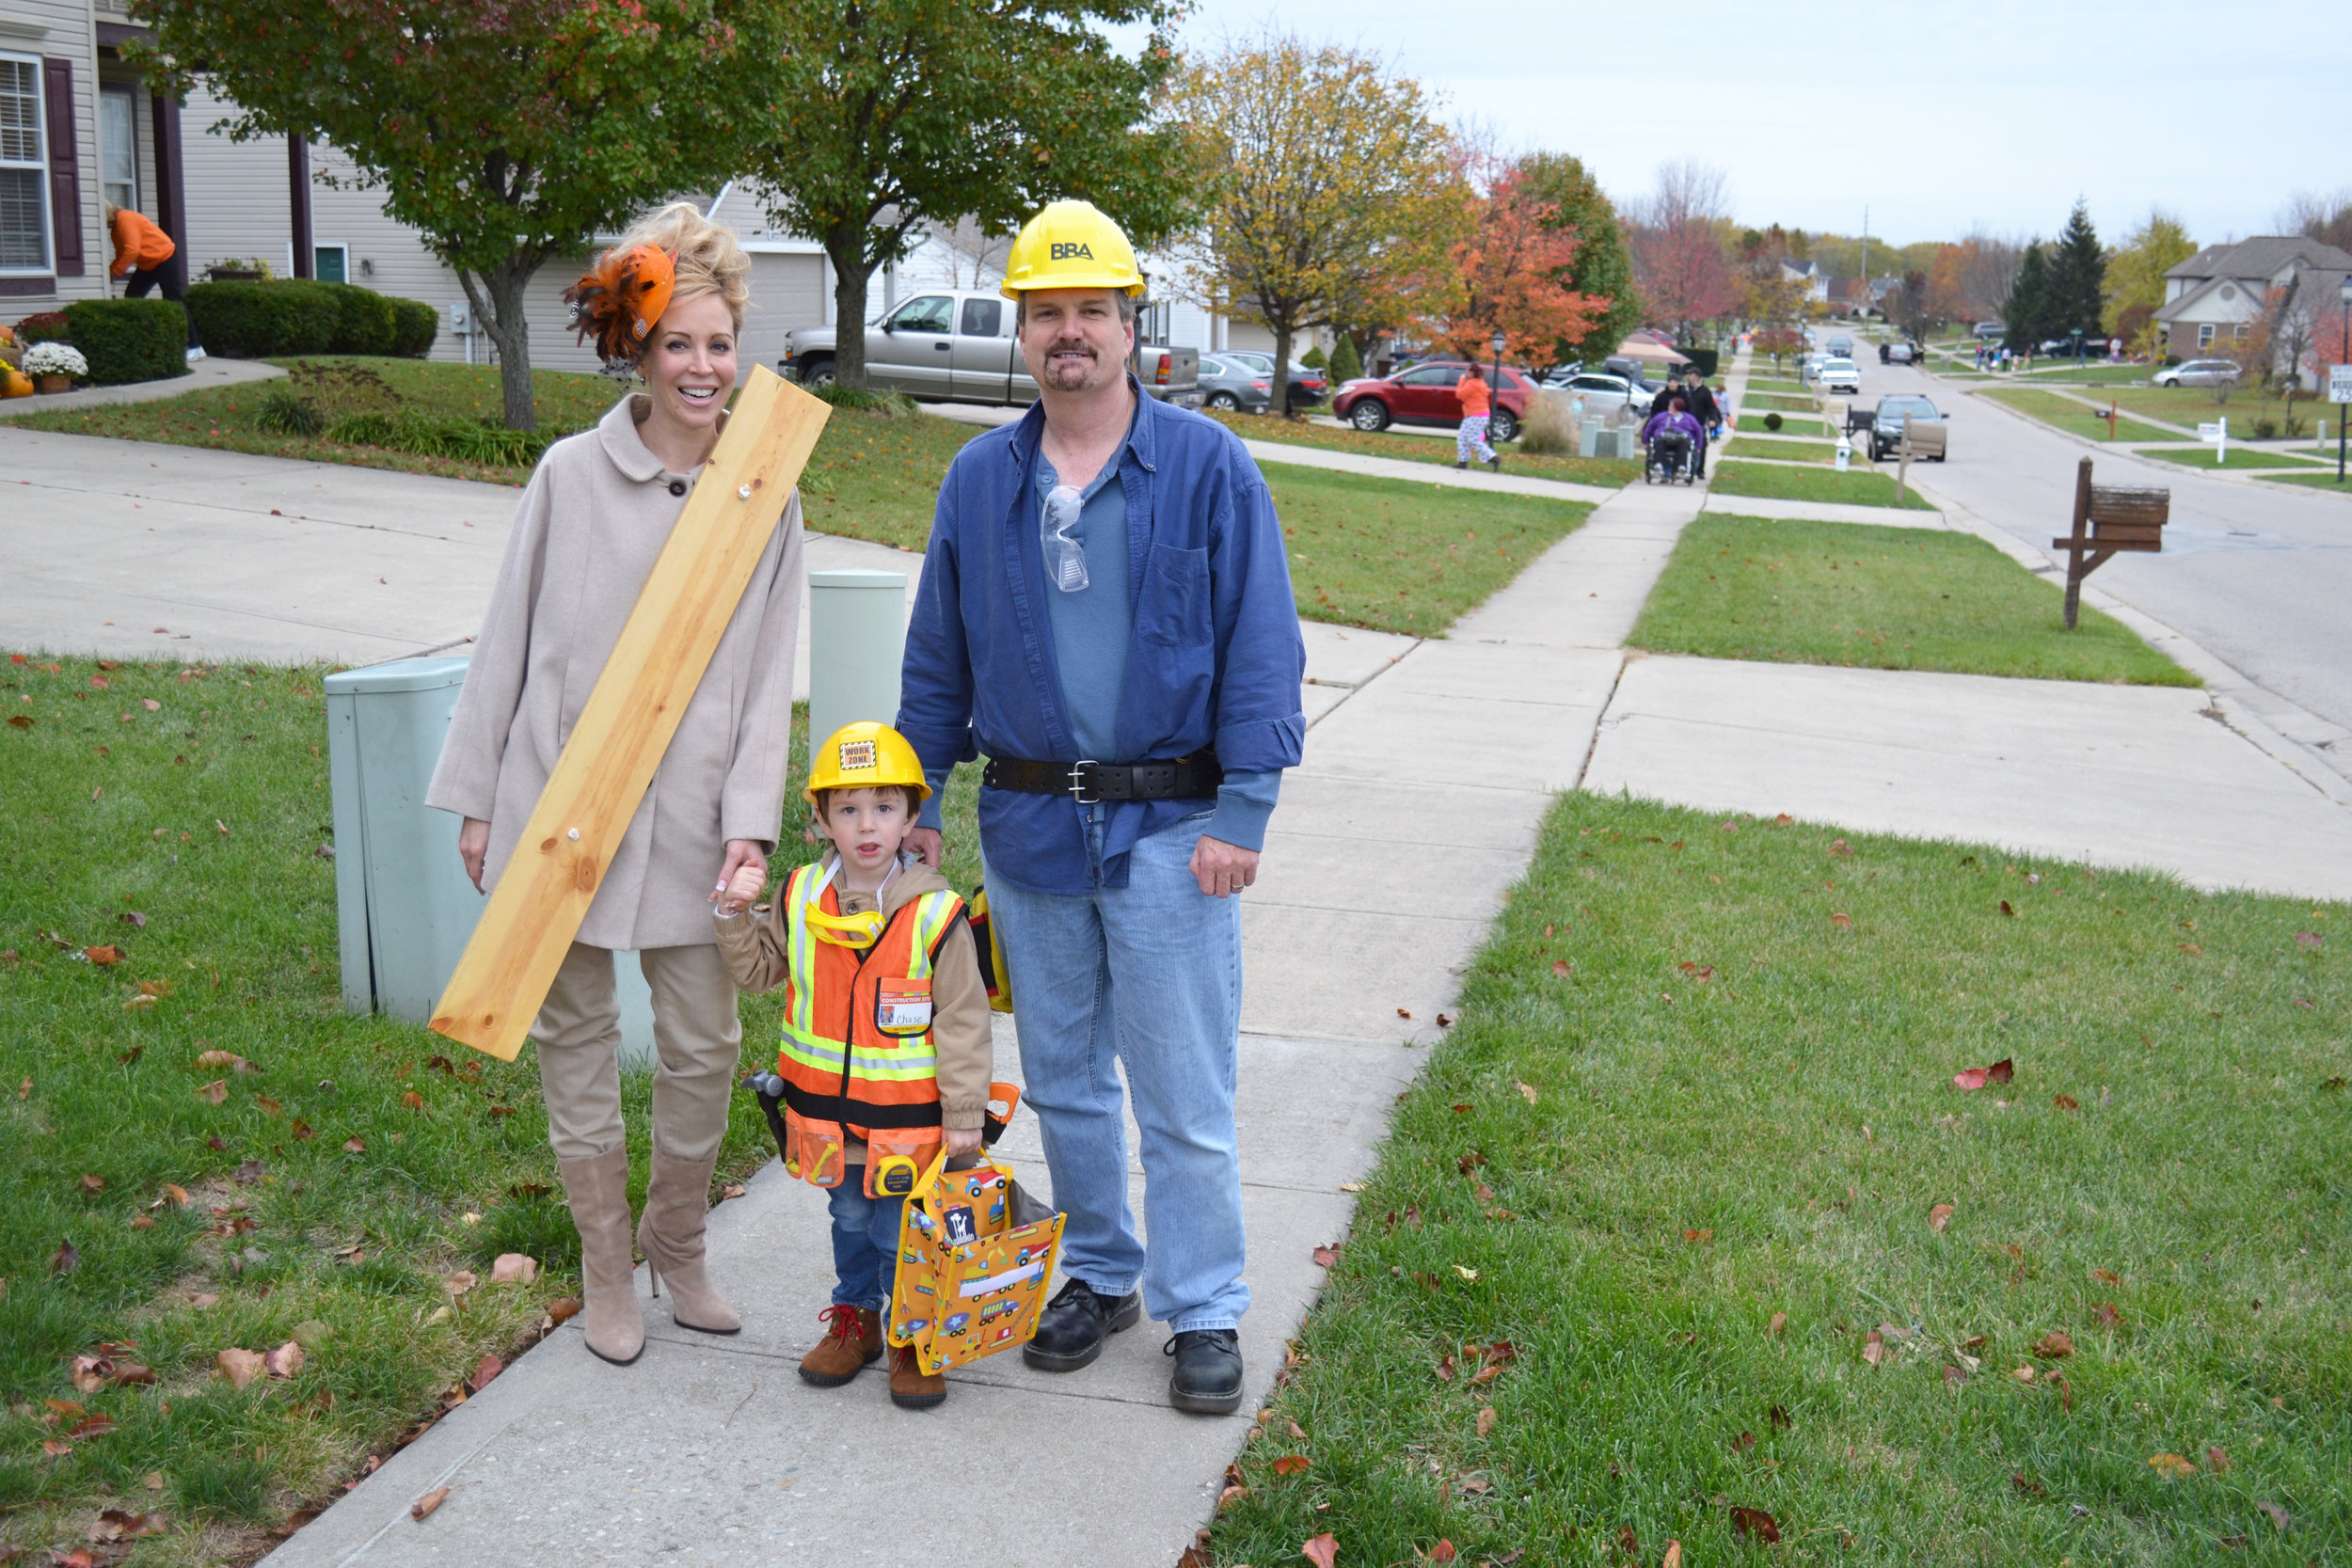 Family Trick or Treating in Oma's neighborhood adj.jpg